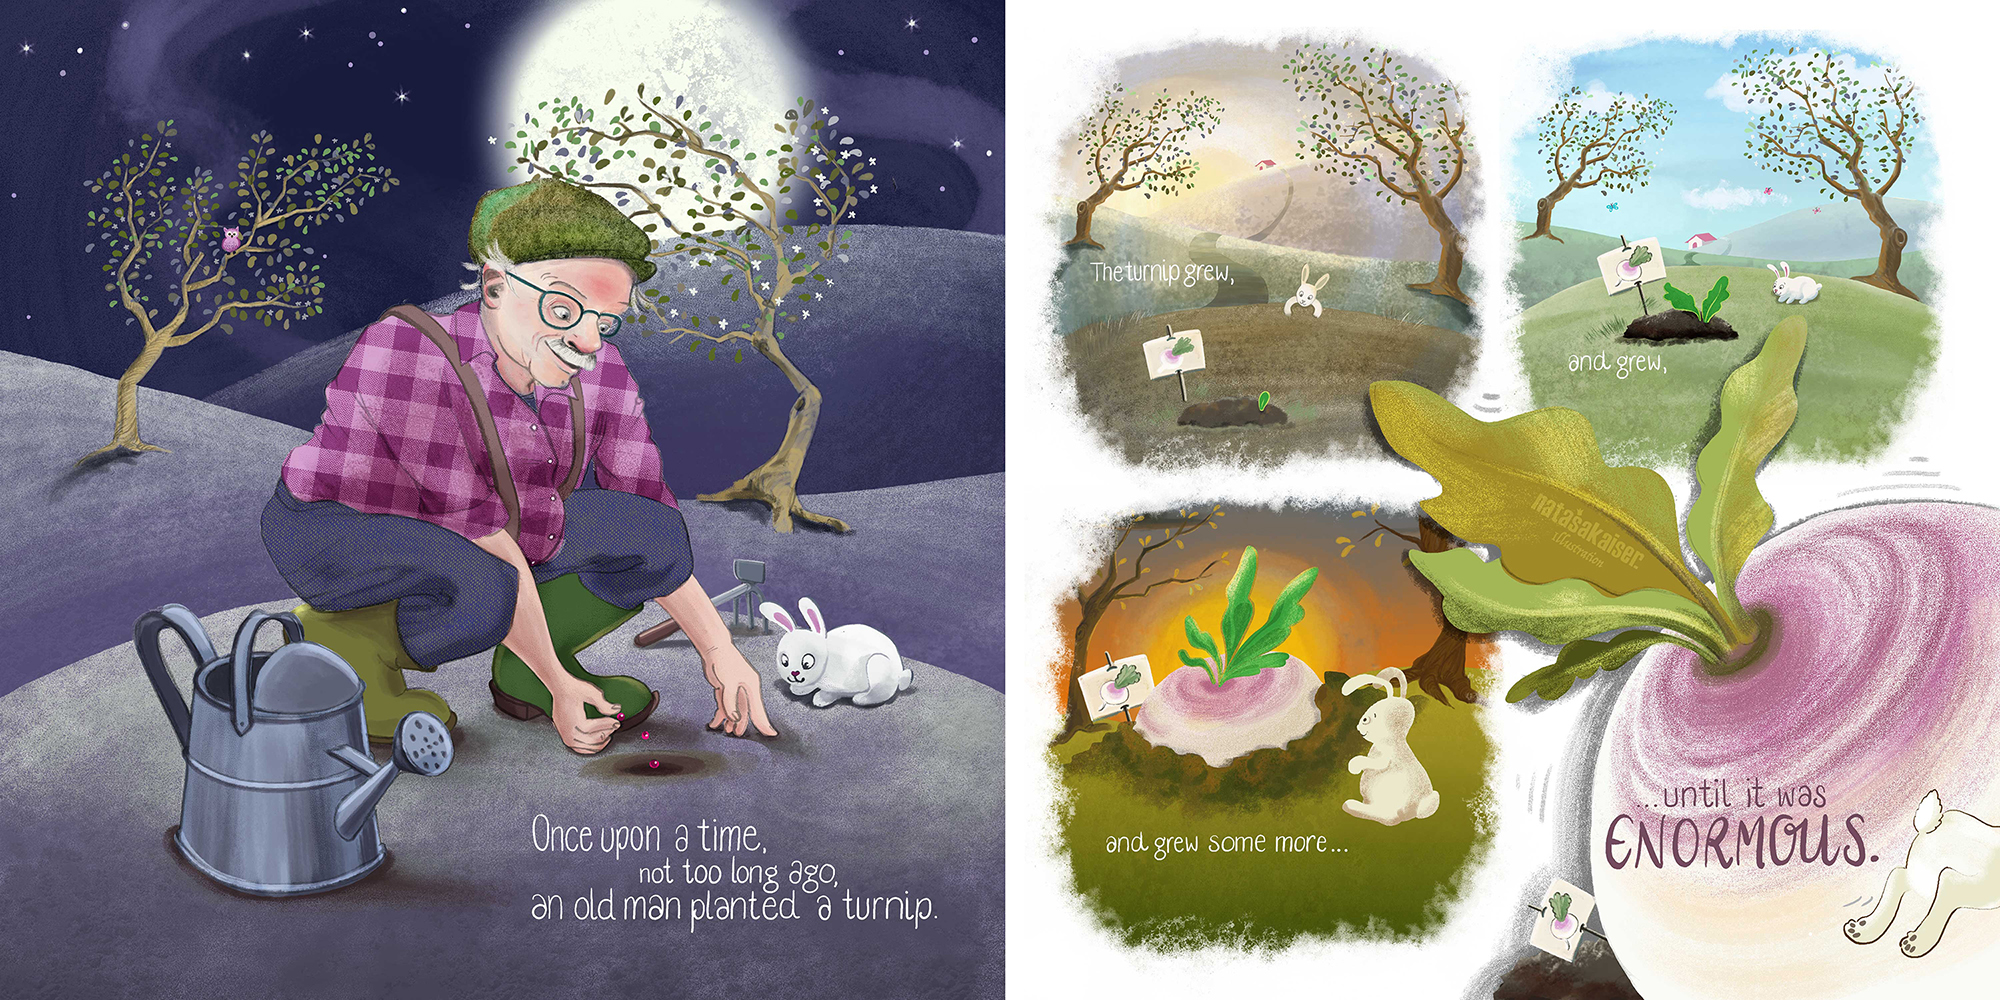 My double page spread shows a sequence of images from the turnip being planted to growing enormously big during the turn of one day – just for the fun of painting different daytimes.